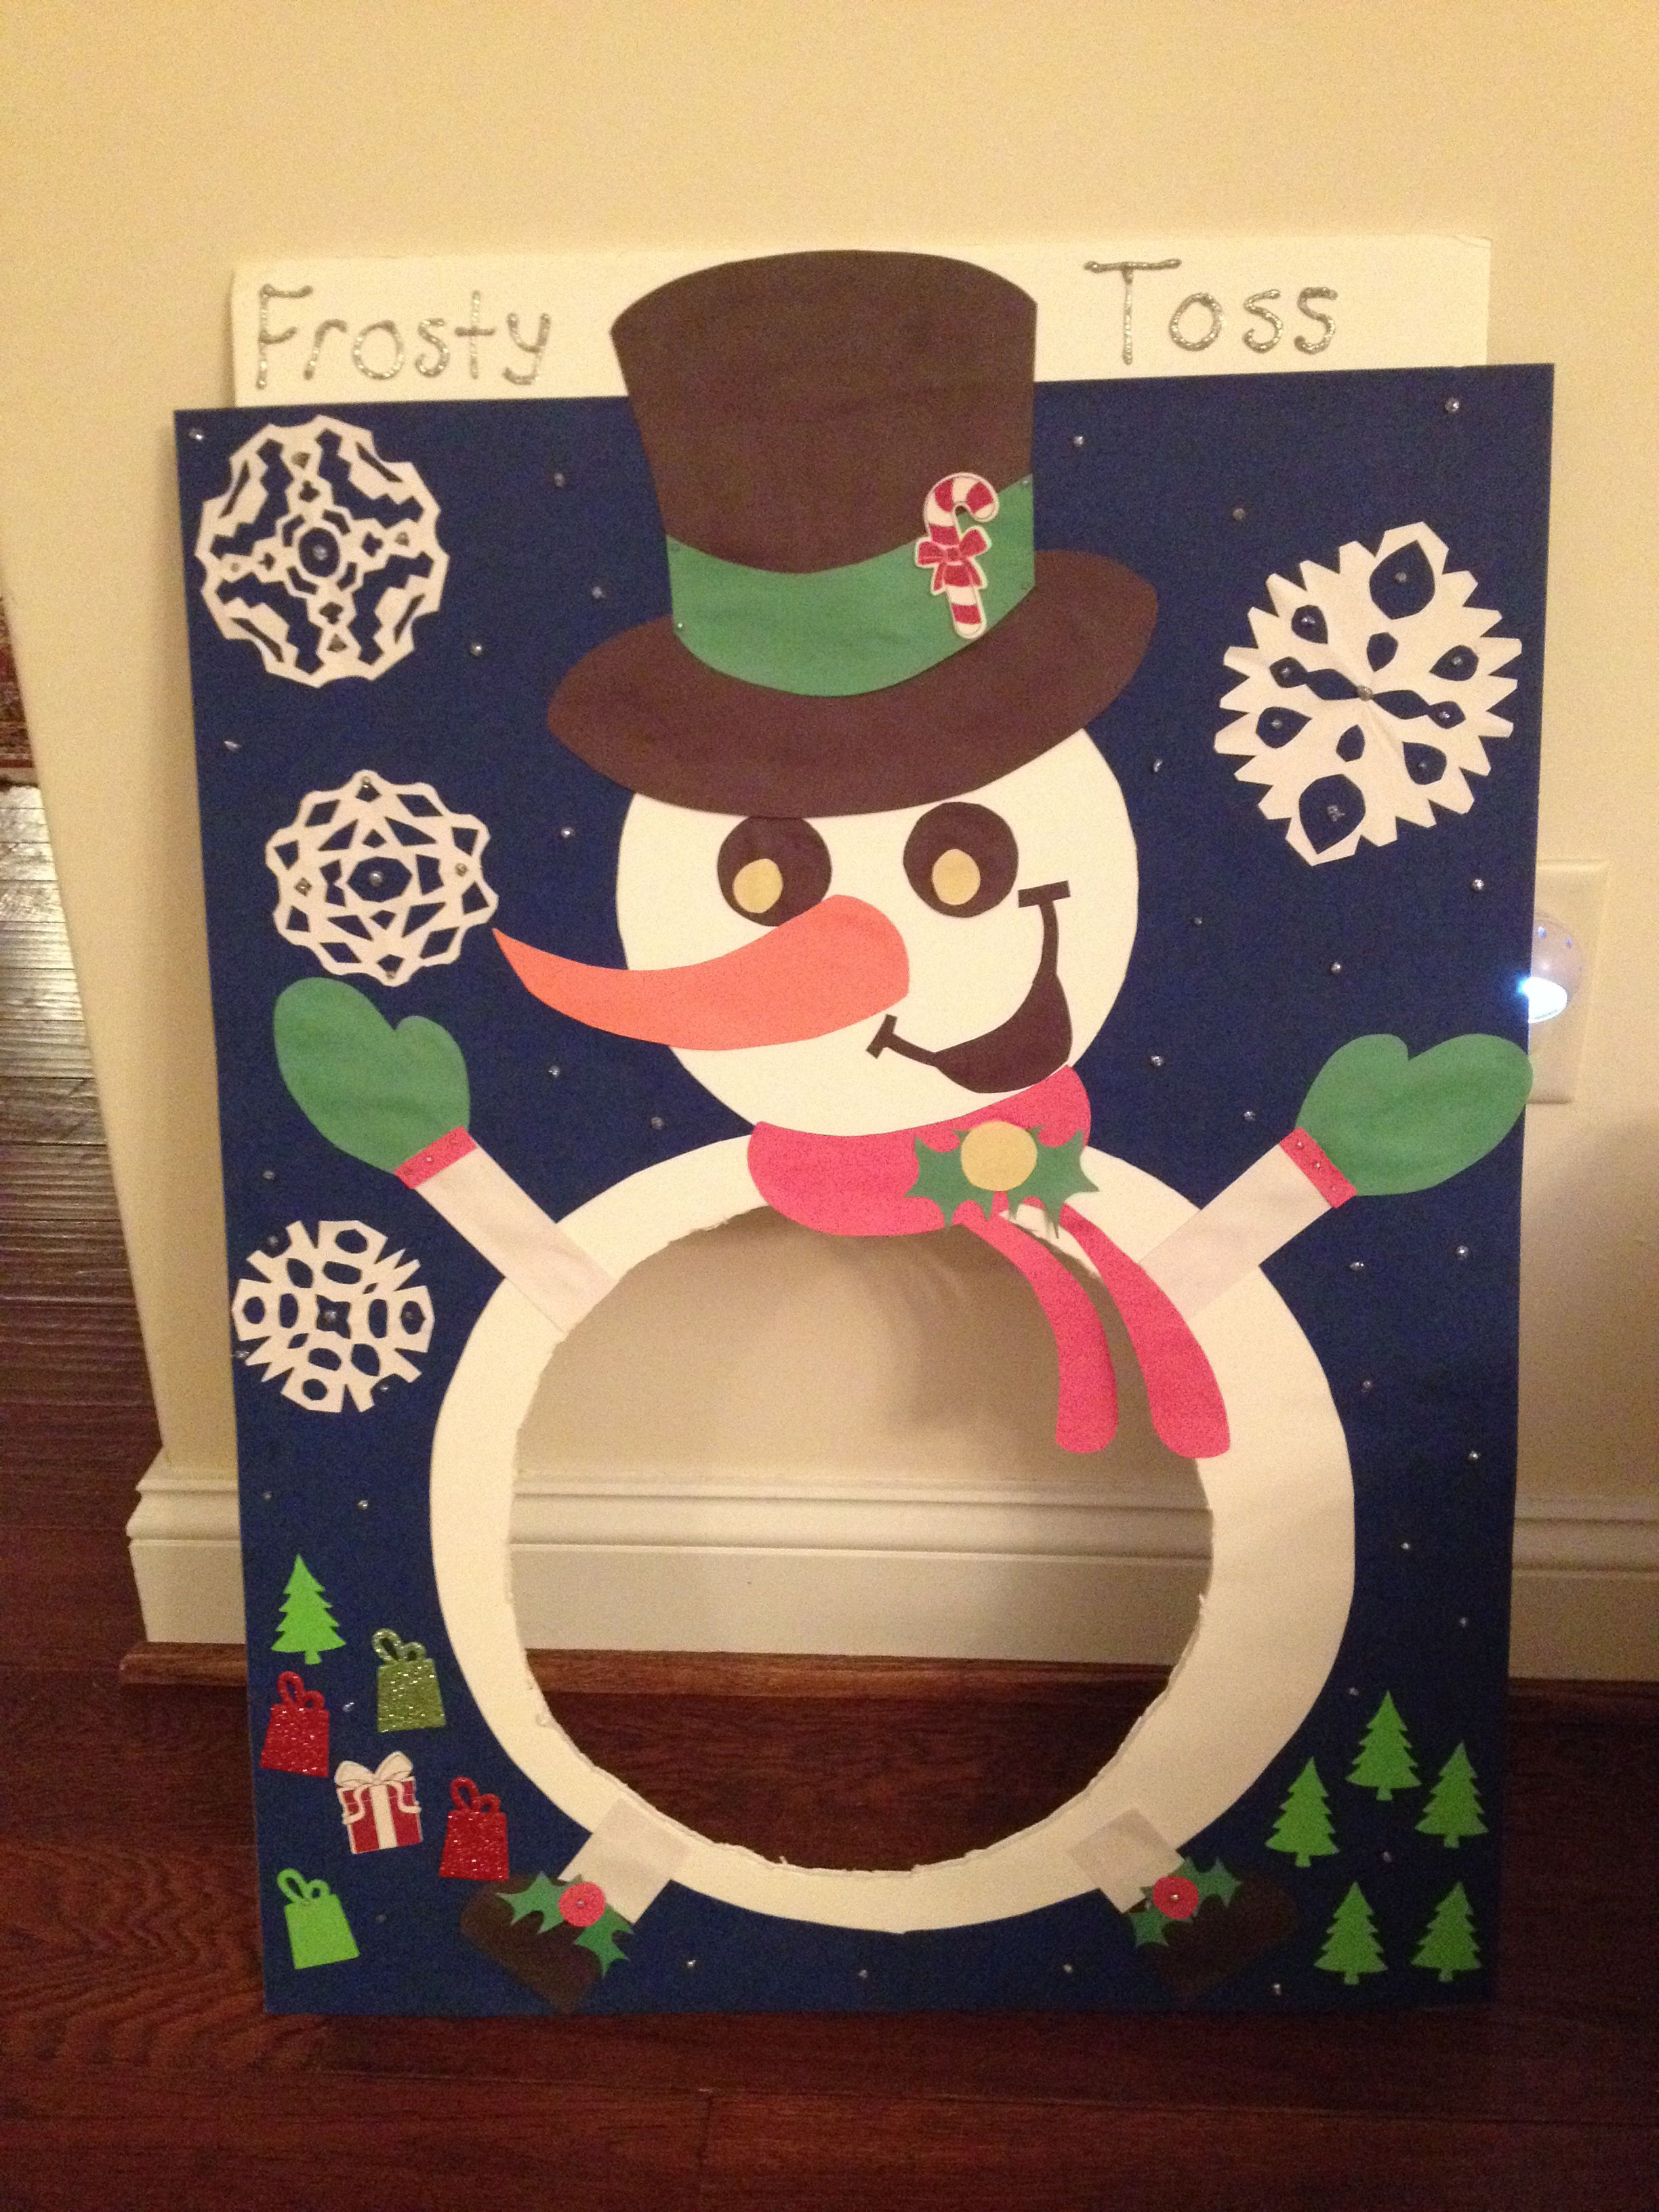 Frosty Snowball Toss For Preschool Holiday Party Idea